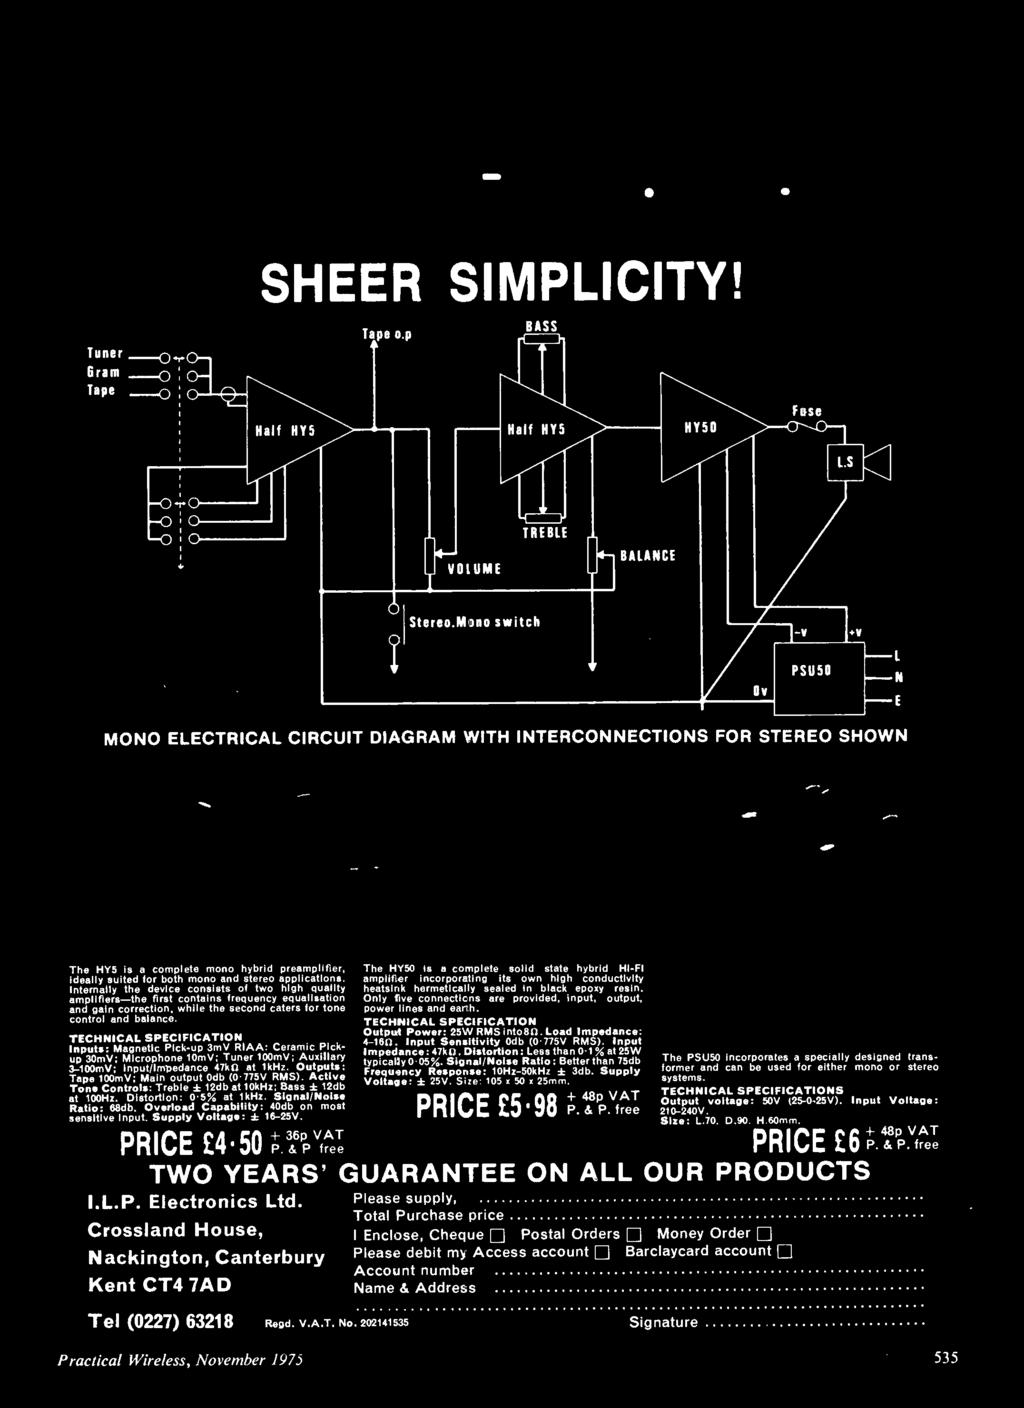 35p Page Supplen1ent No2 Simple Nome Projects Sou Tuner For Heft Circuit Diagram Schematic Likewise Toy Organ 555 Timer Only Five Connecticns Are Provided Input Output Power Lines And Earth Technical